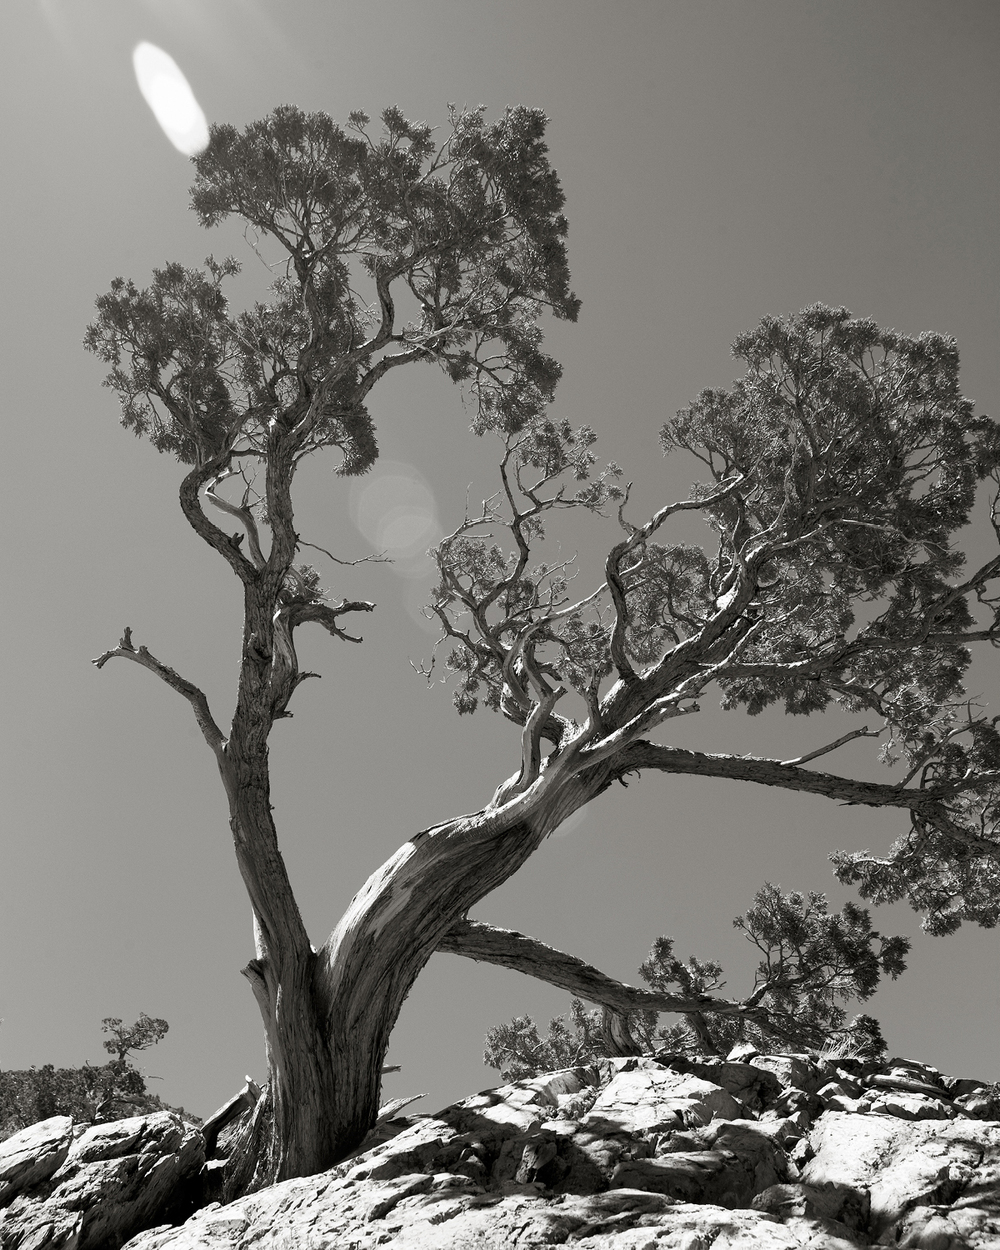 BONSAI STYLE PINE TREE ALONG THE LUNDY CANYON TRAIL